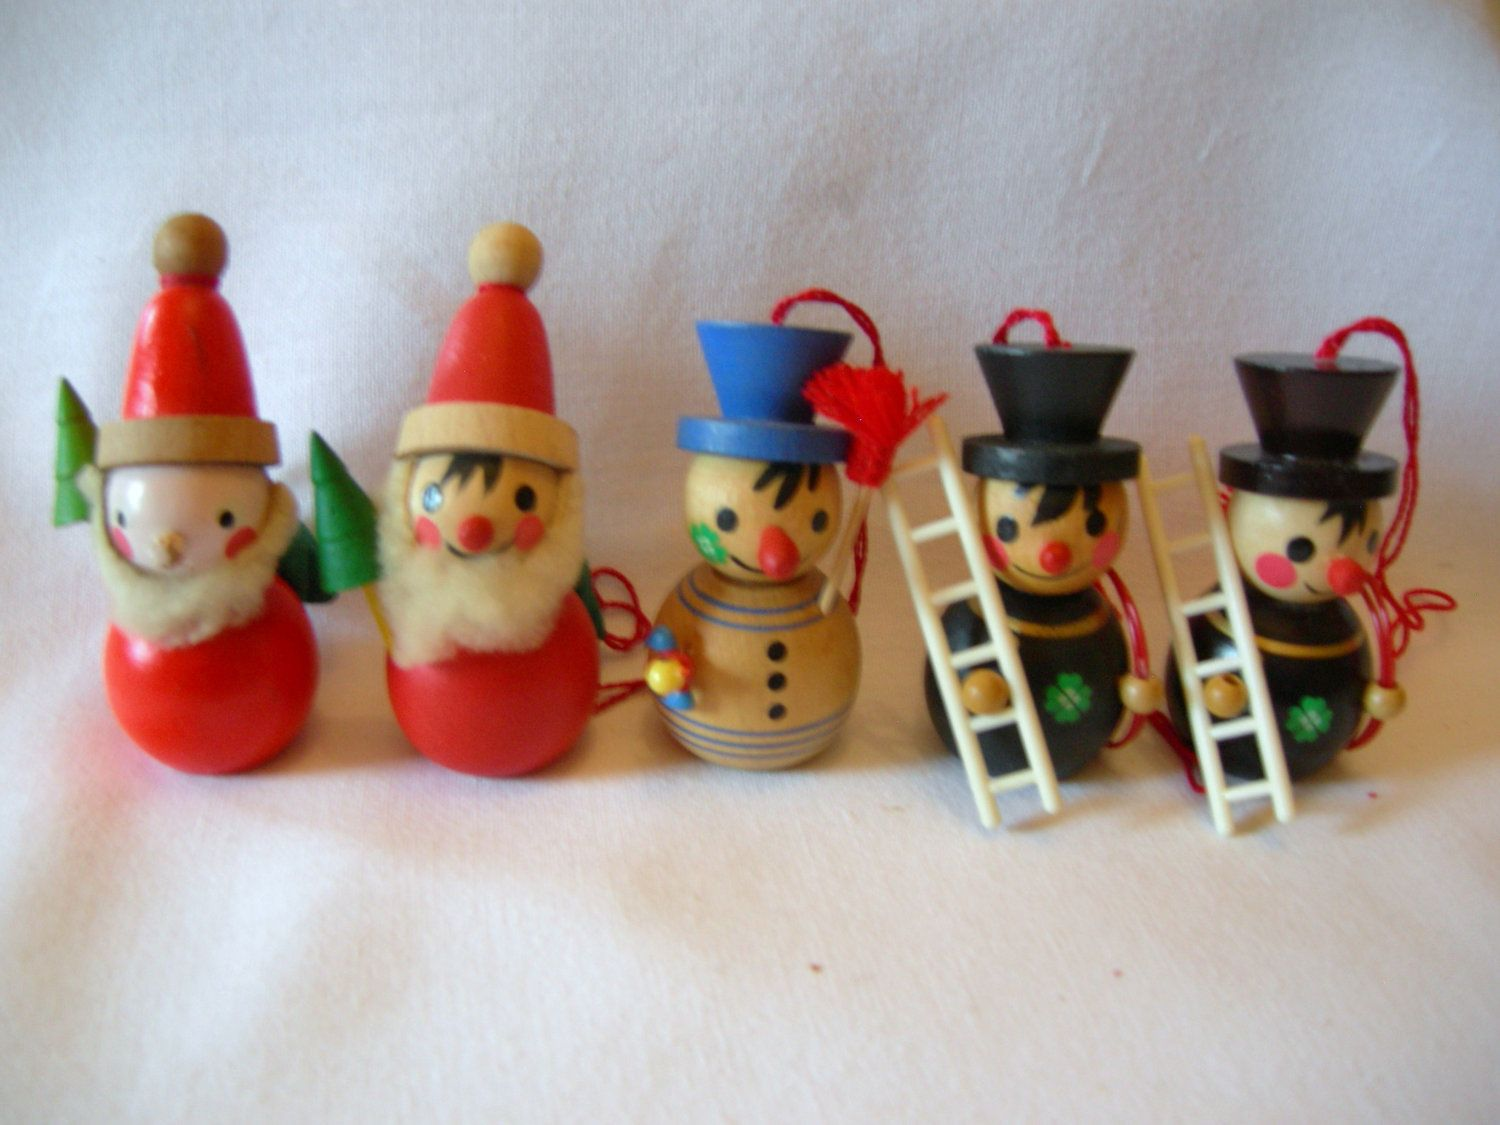 German Vintage Wooden Steinbach Witch Ornament Made In Etsy Christmas Ornaments Wood Christmas Ornaments How To Make Ornaments